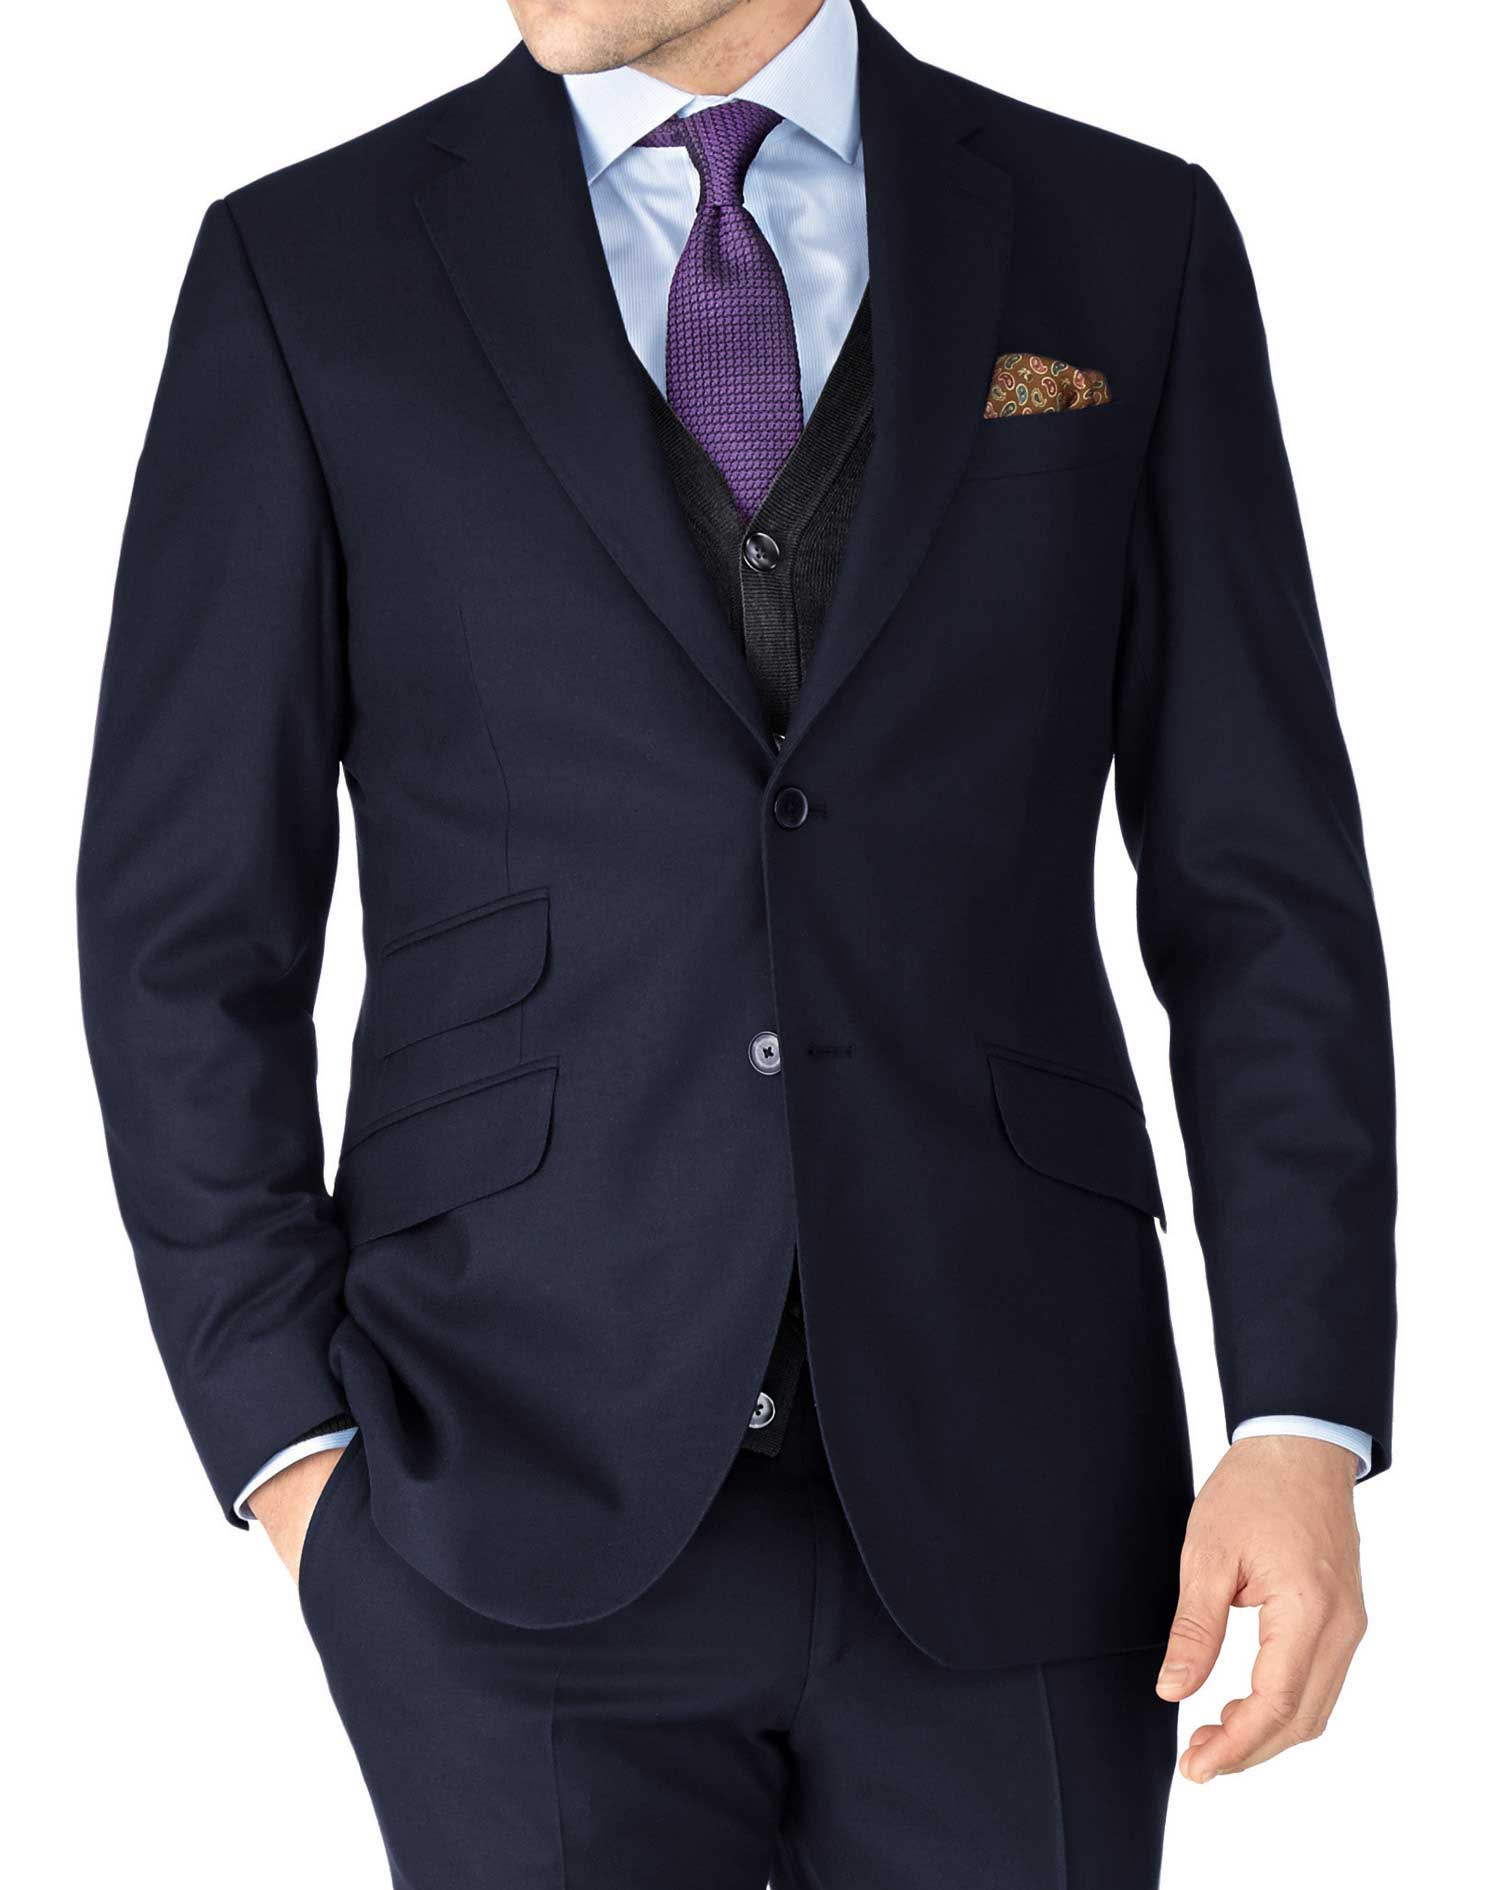 Navy Slim Fit British Serge Luxury Suit Wool Jacket Size 40 Long by Charles Tyrwhitt